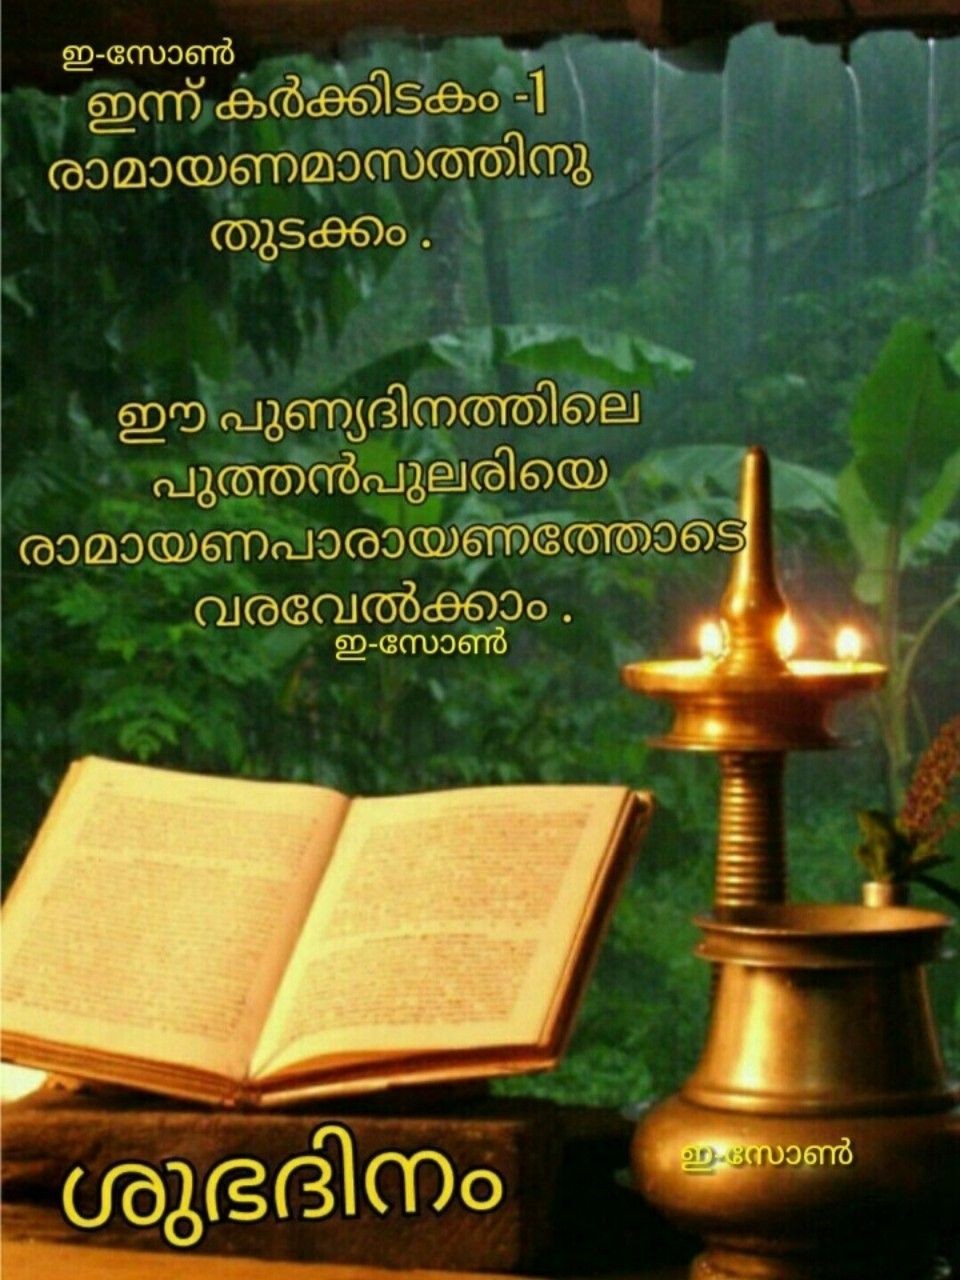 Pin by Eron on Karkidakam in 2020 Malayalam quotes, New